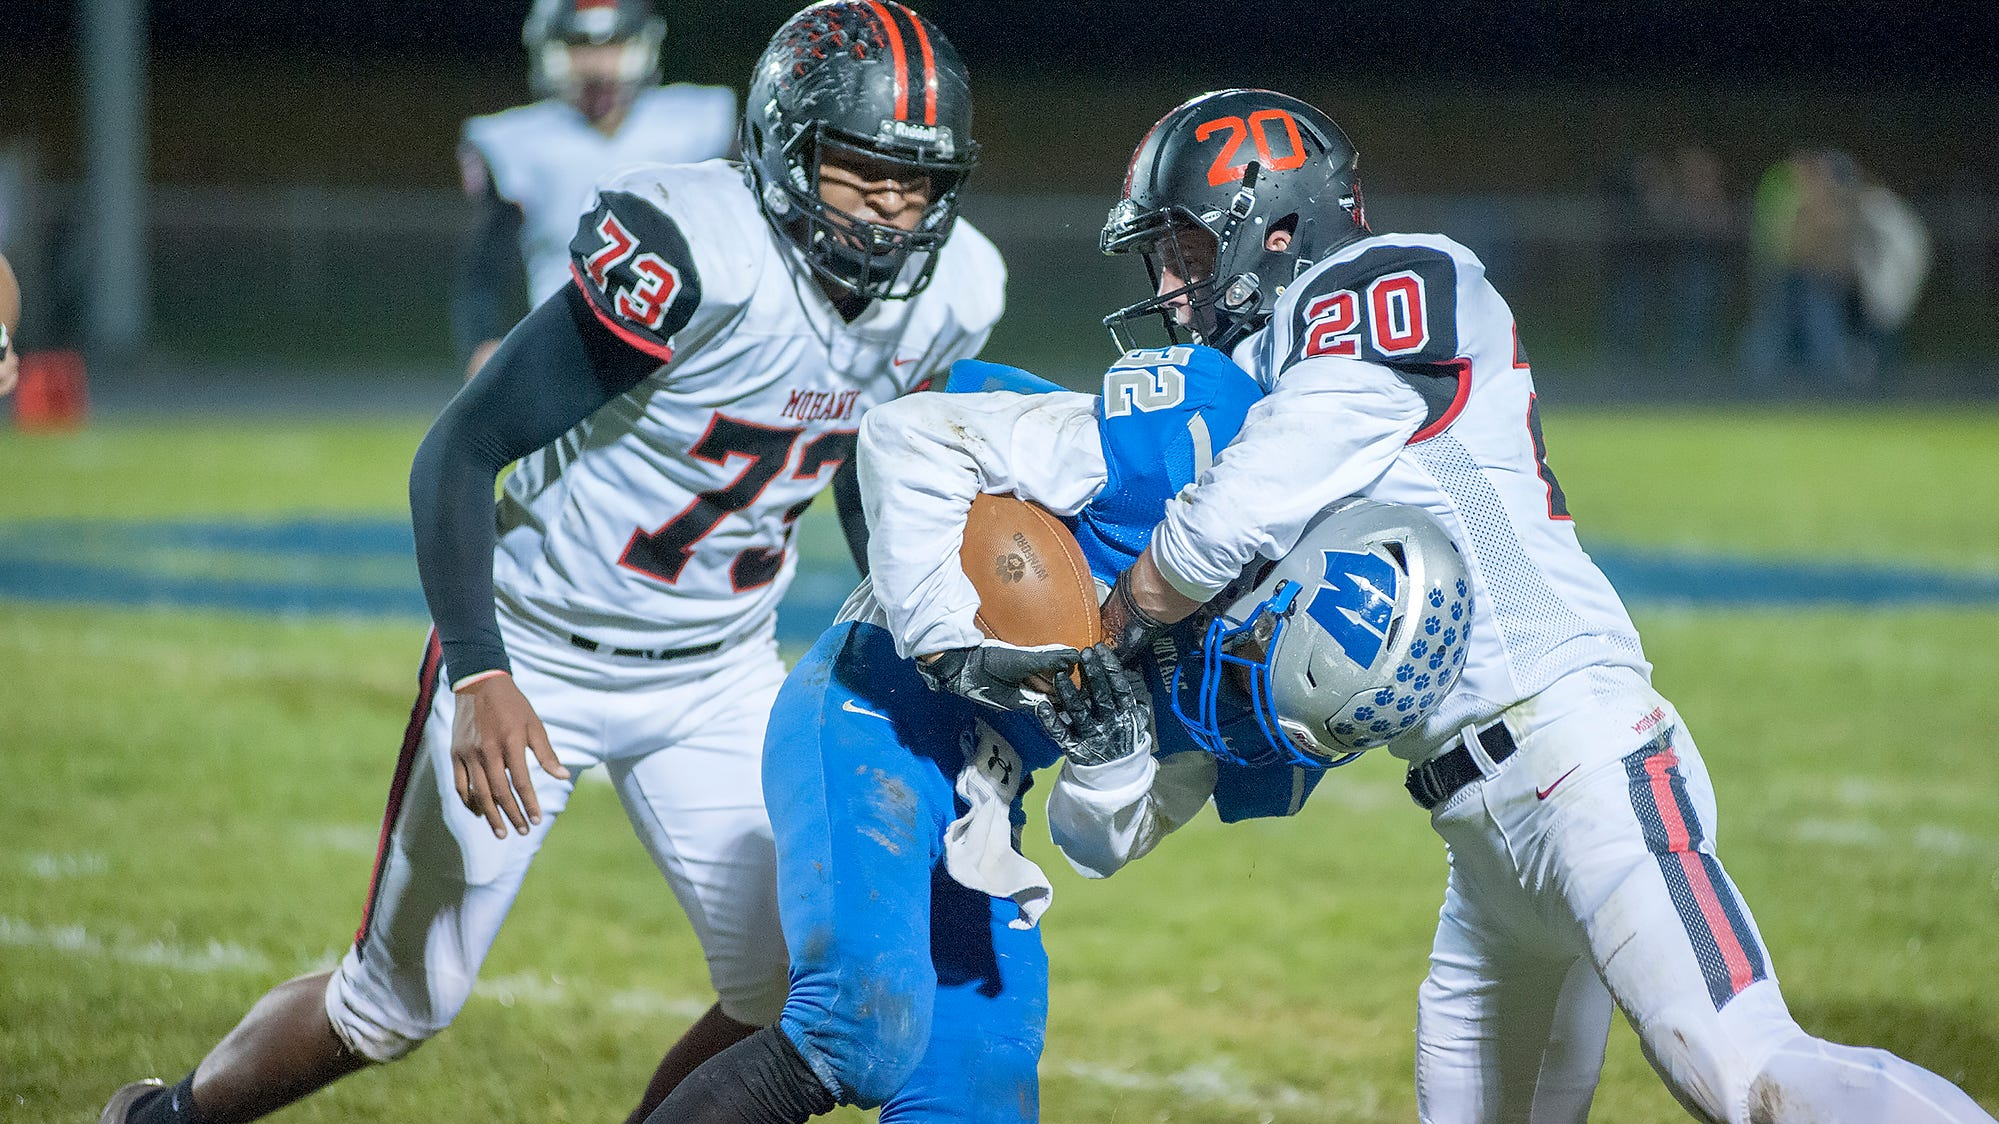 'We got dominated:' Wynford shutout at home by No. 1 Mohawk